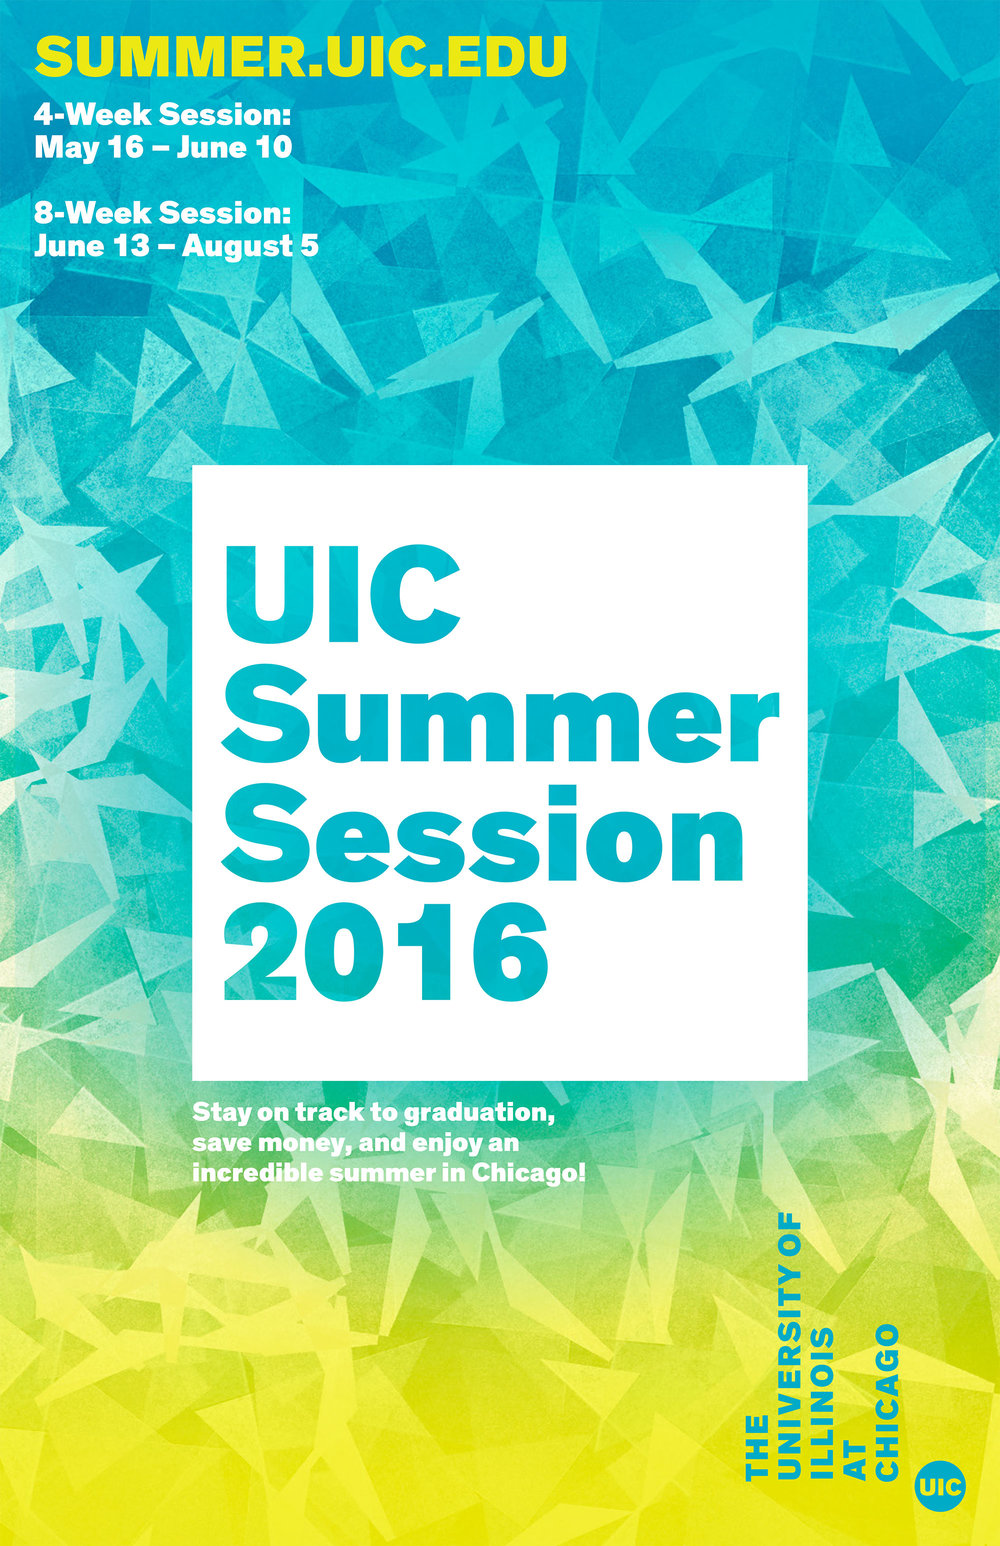 UIC_SummerSession_Ben_Geometry_v2.jpg